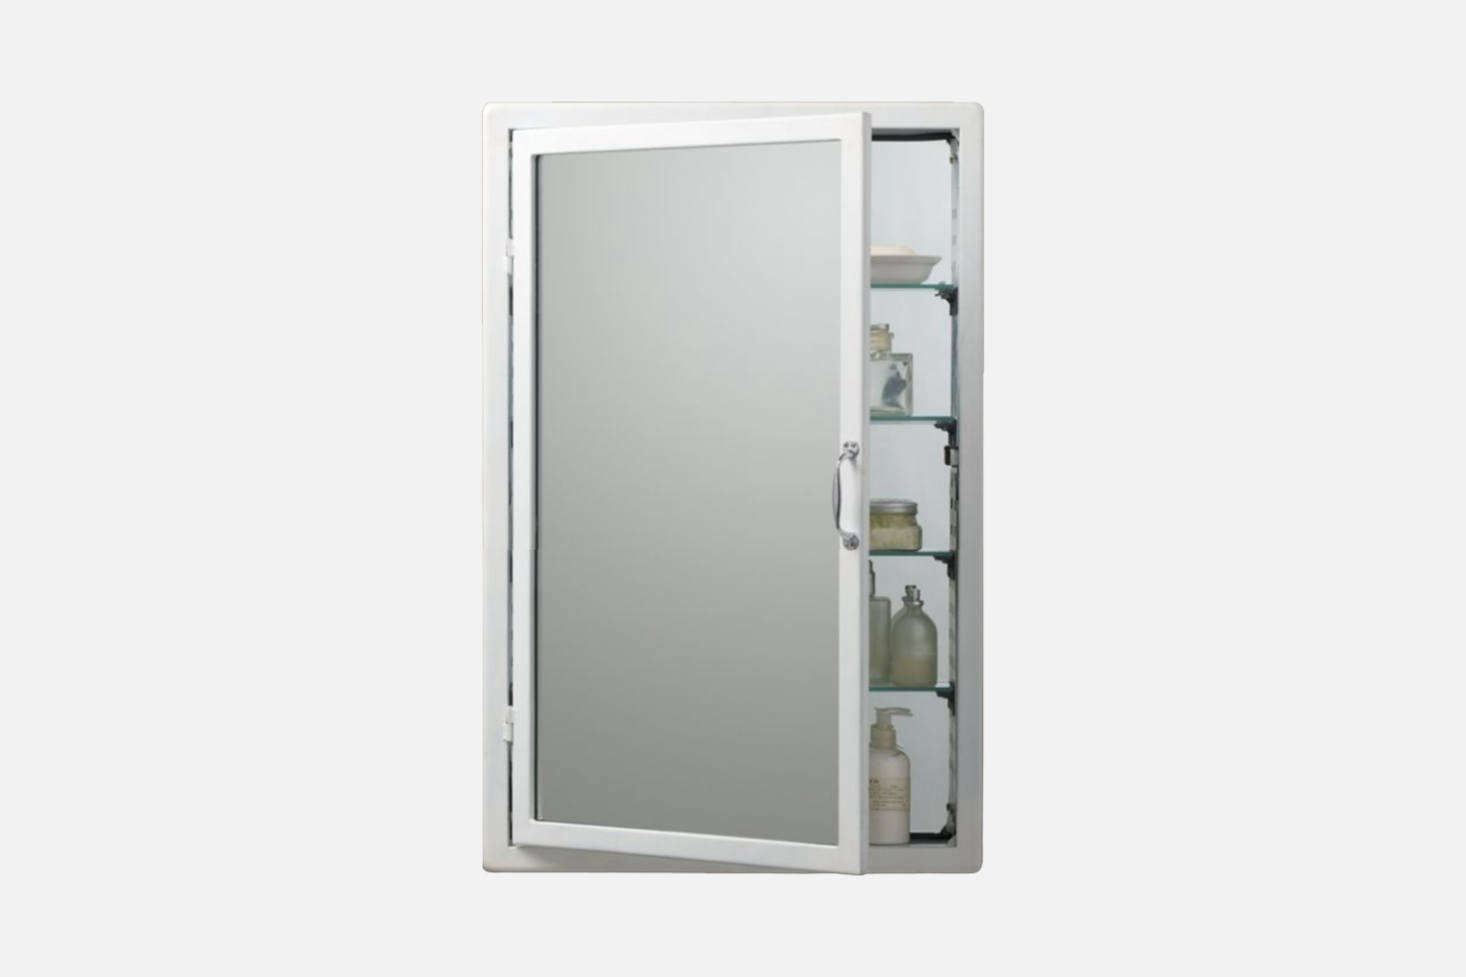 The Restoration Hardware Pharmacy Wall Mount Medicine Cabinet My Personal Pick Is Modeled